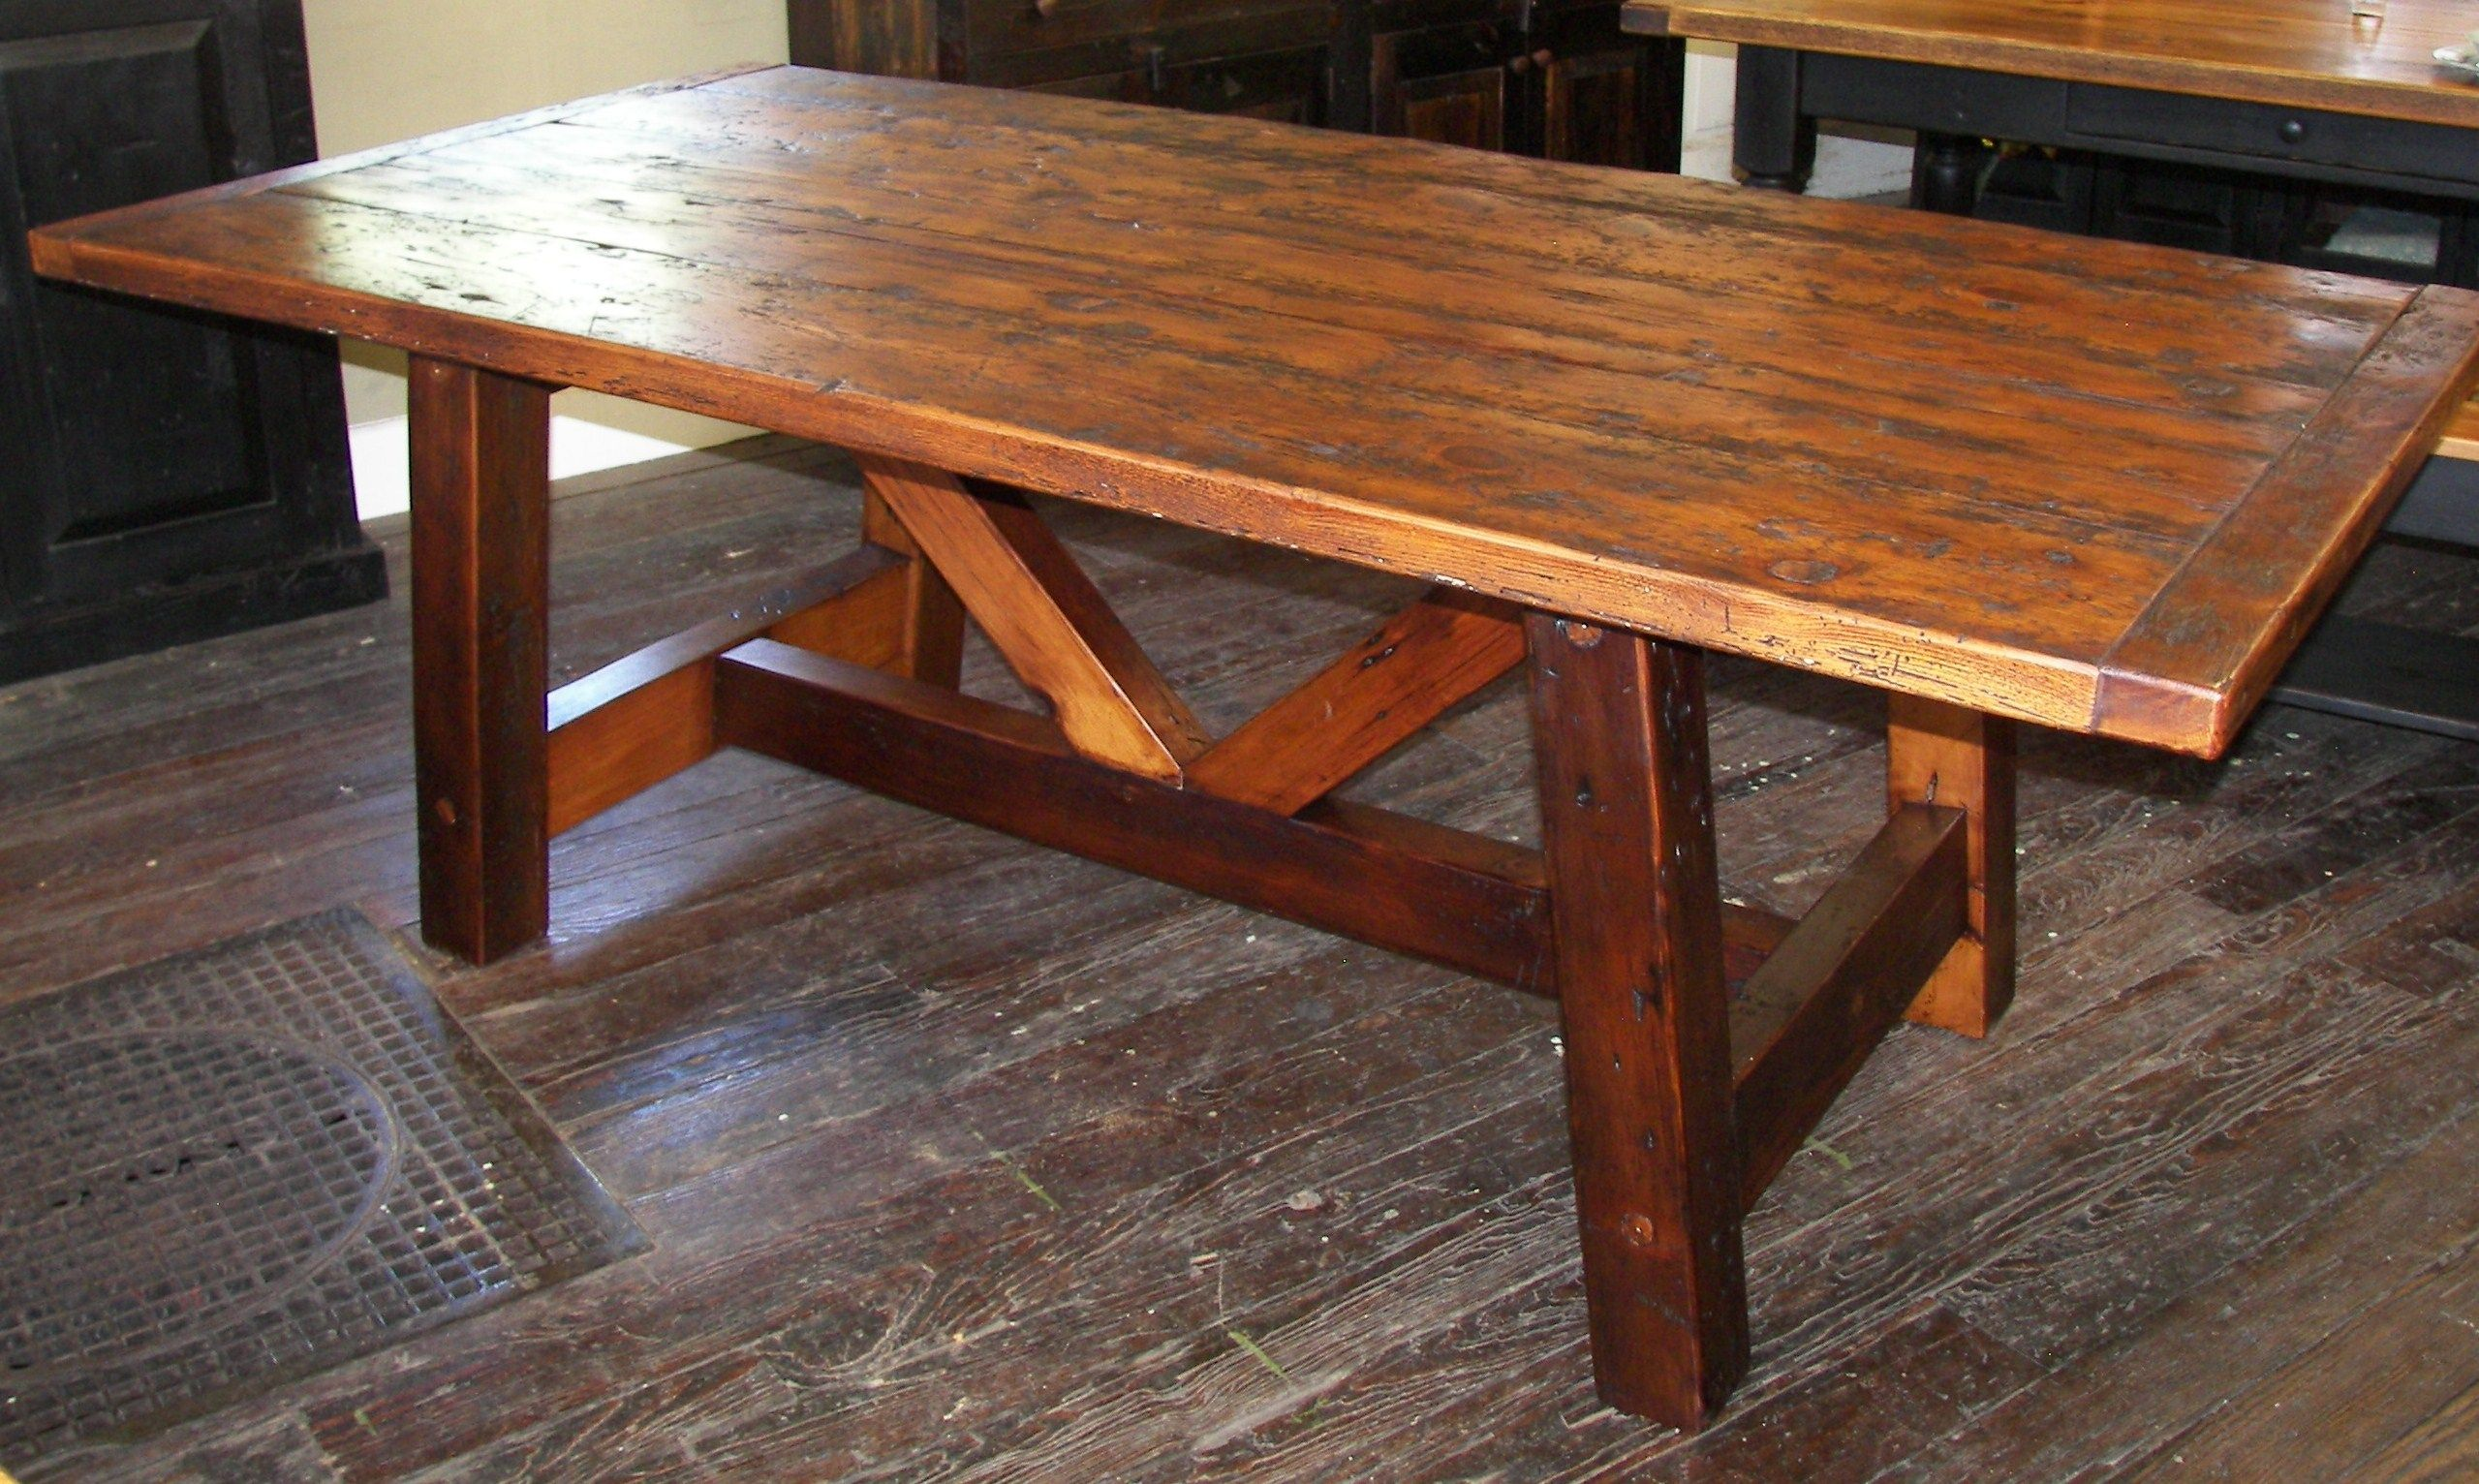 reclaimed barn wood trestle table sawbuck trestle wood from dismantled barns and log homes